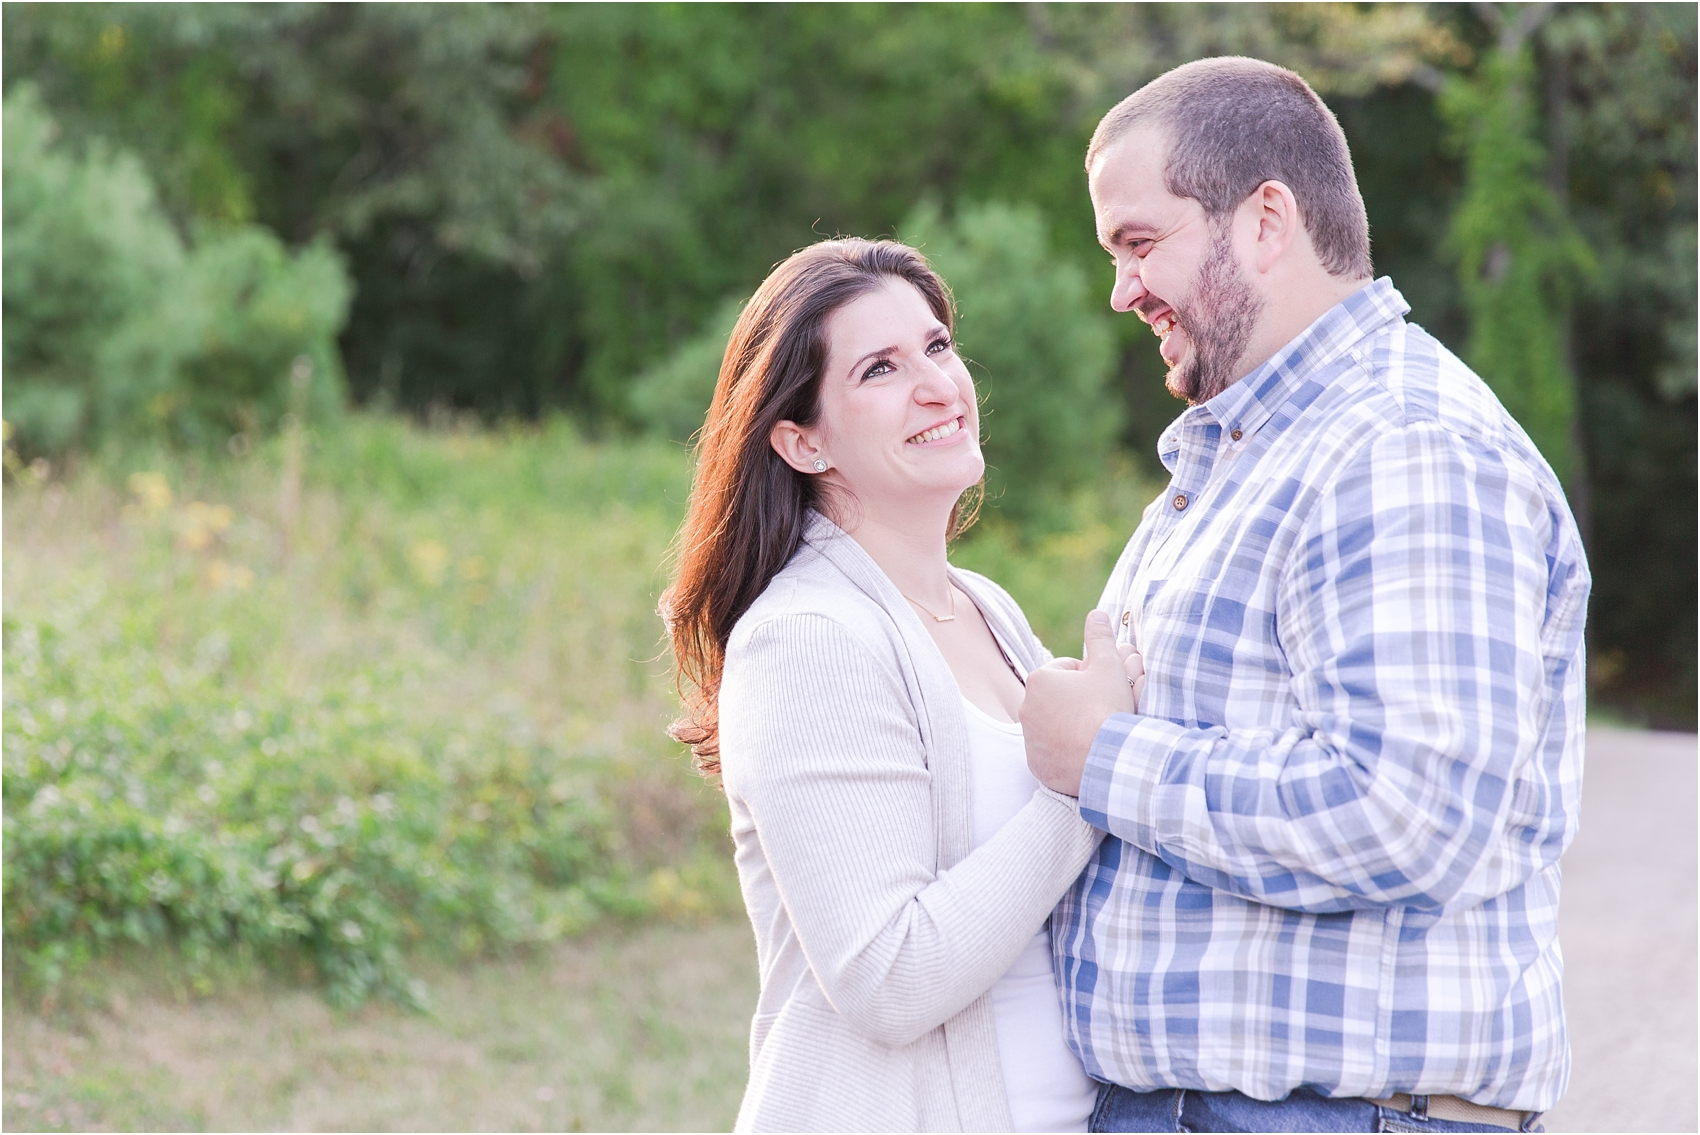 emotional-candid-romantic-engagement-photos-in-detroit-chicago-northern-michigan-by-courtney-carolyn-photography_0020.jpg